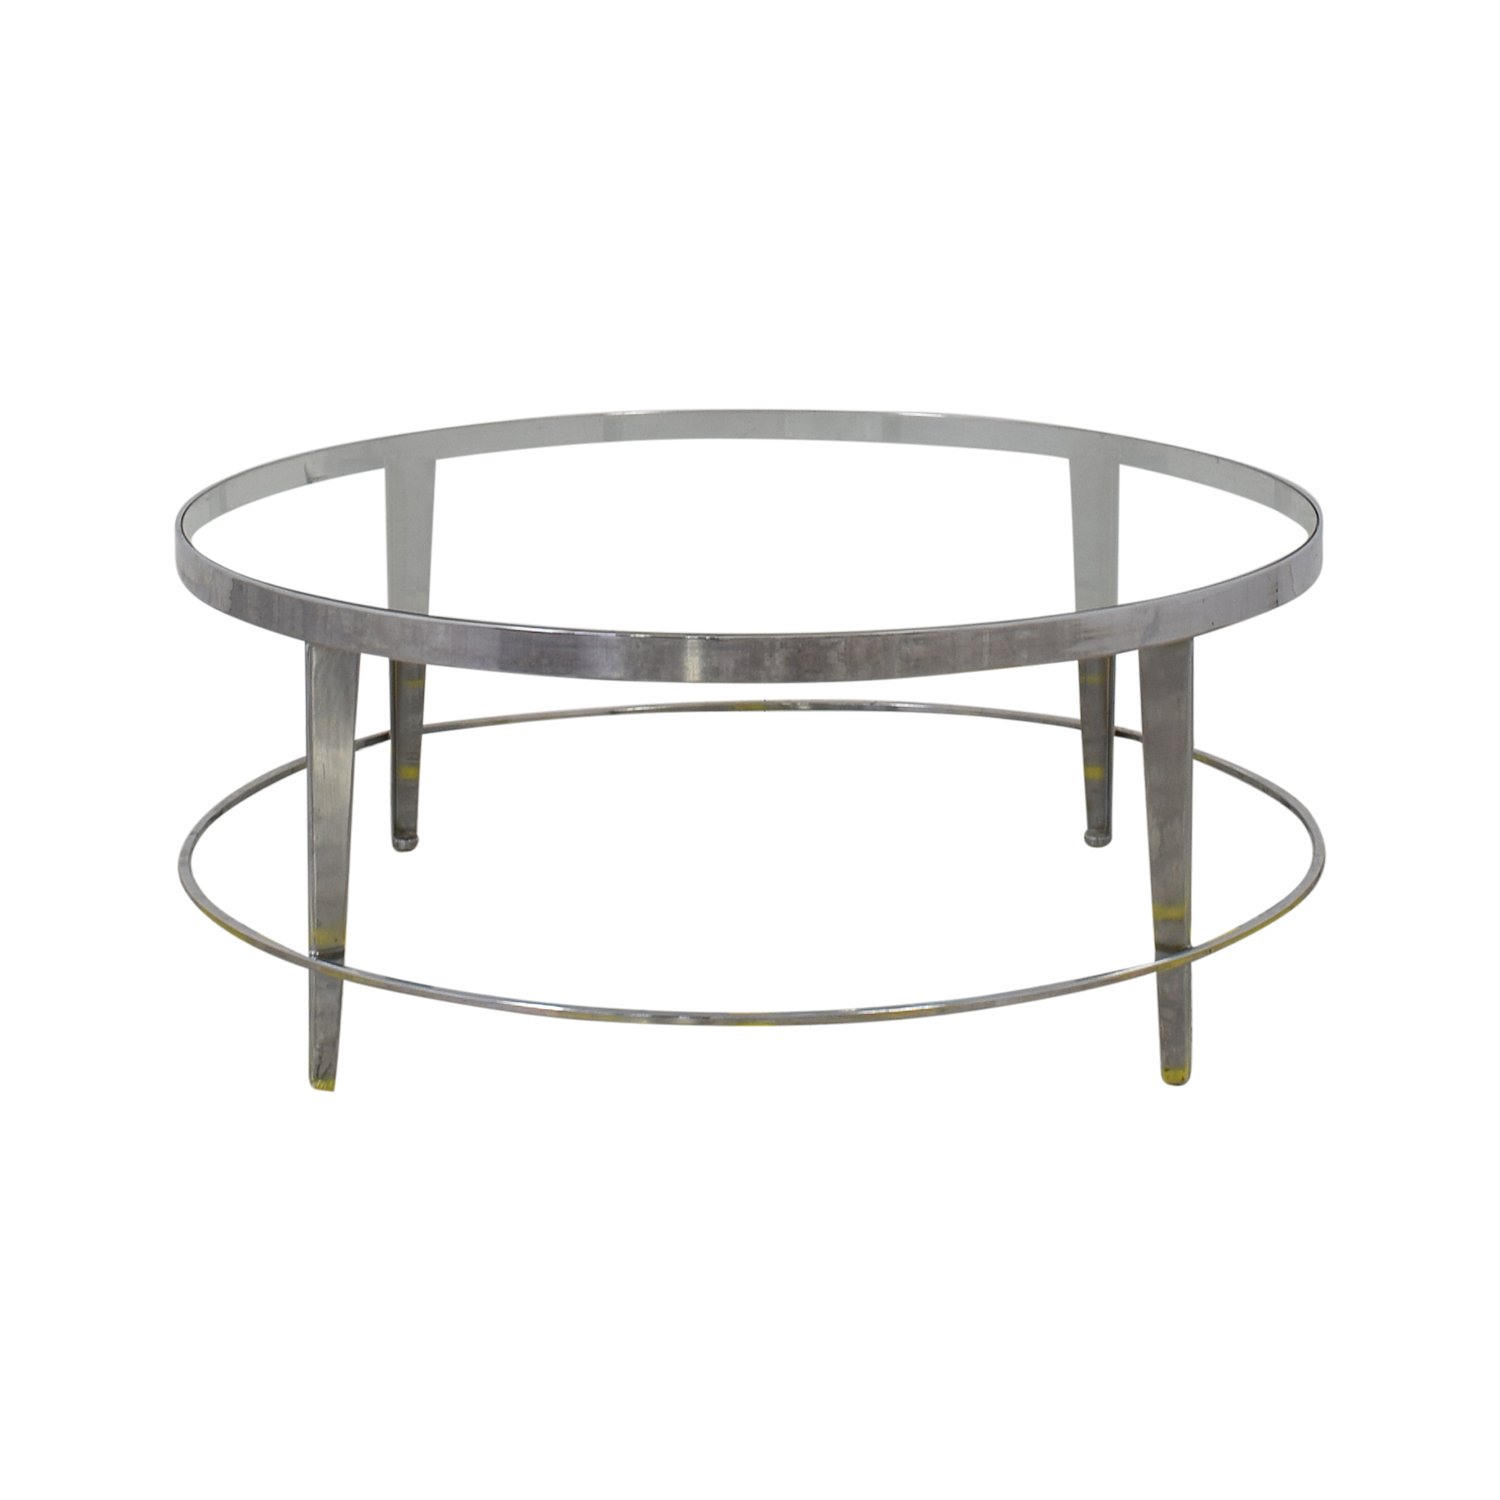 Bloomingdale's Bloomingdale's Round Glass Top Coffee Table second hand